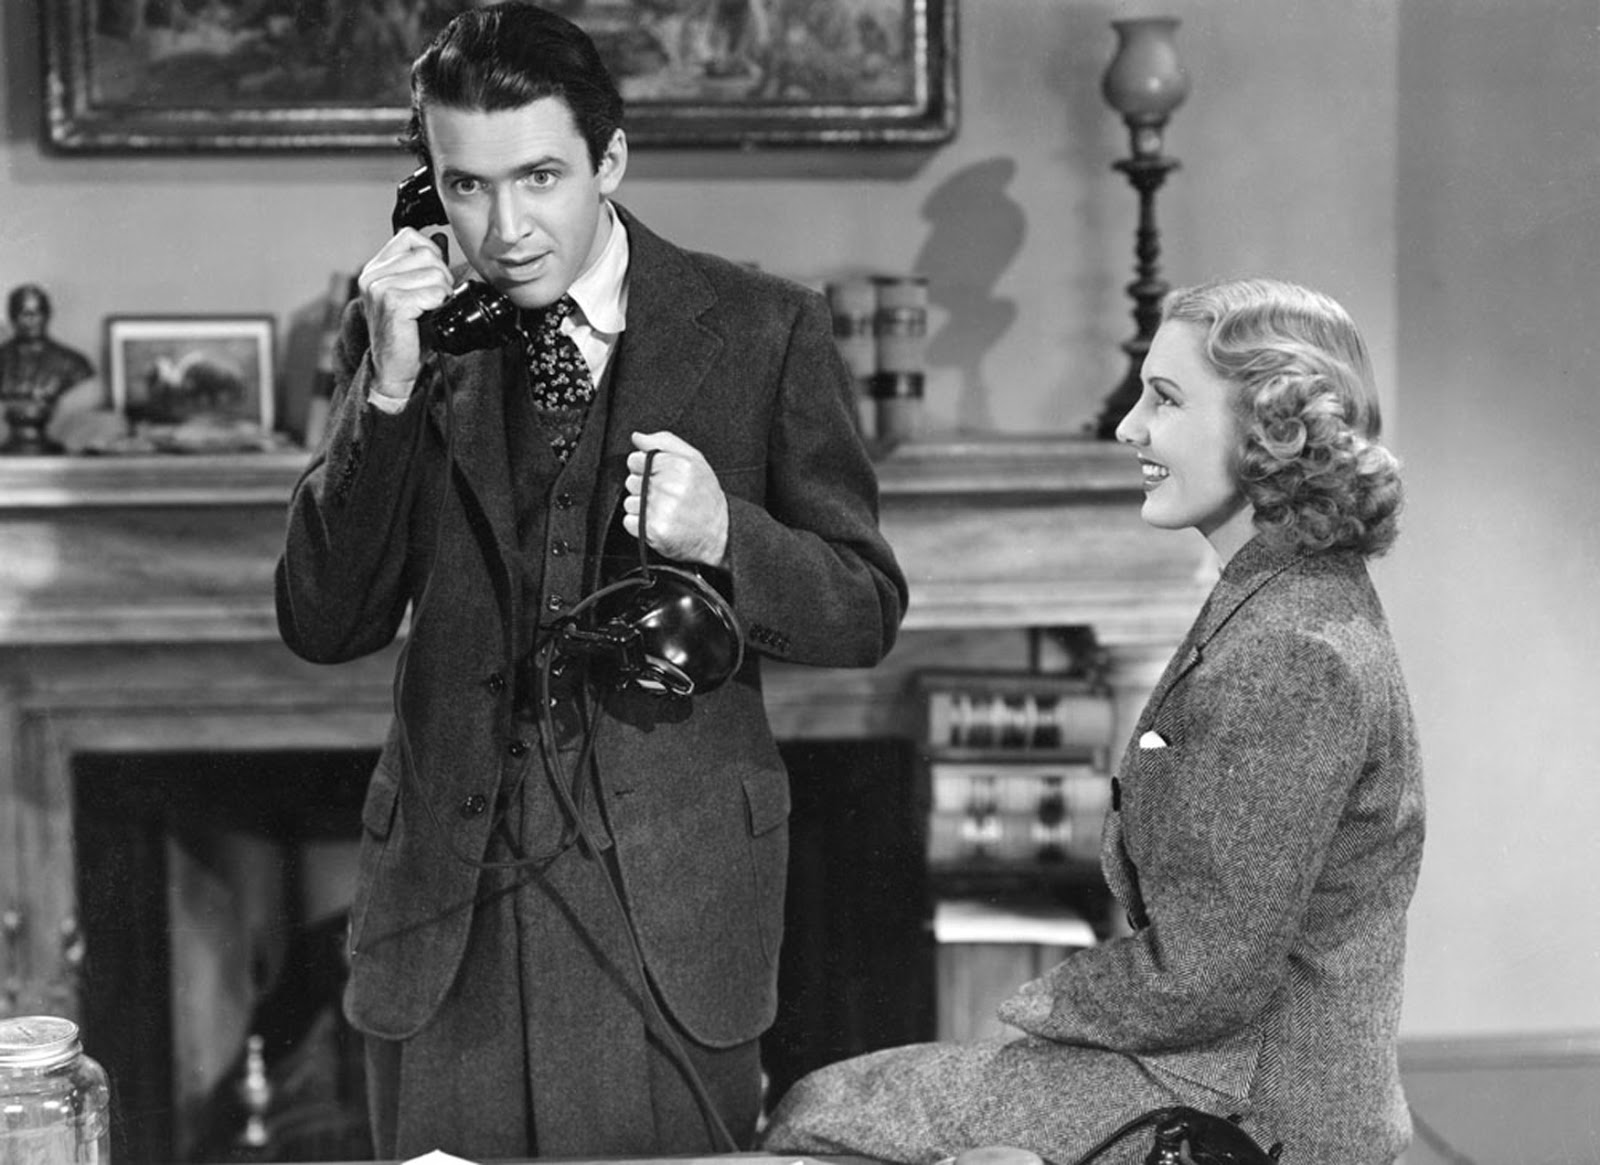 mr smith goes to washington Overview of mr smith goes to washington, 1939, directed by frank capra, with jean arthur, james stewart, claude rains, at turner classic movies.